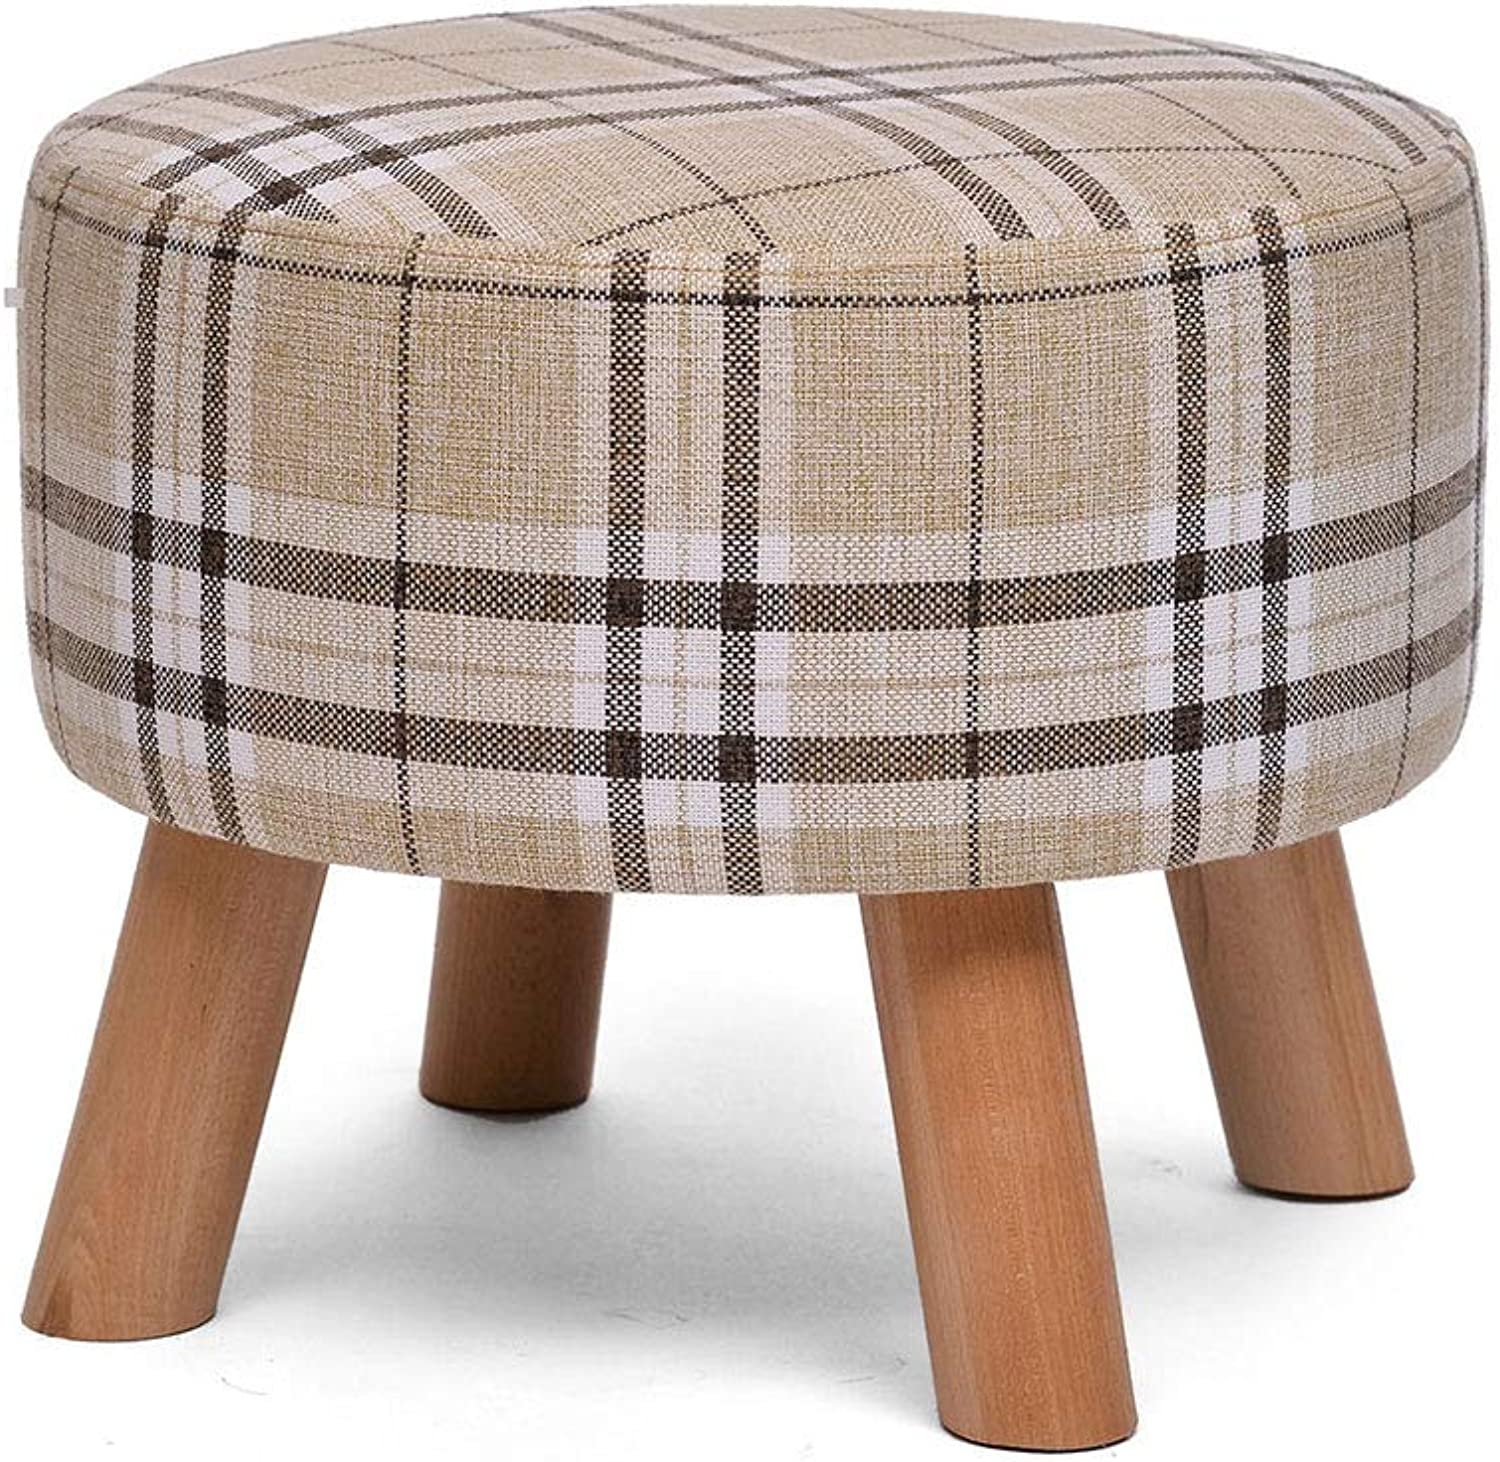 Wooden Stool, Four-Leg Sponge Soft Cushion Creative Cloth Washable Change shoes Round Stool (color   Stripe)